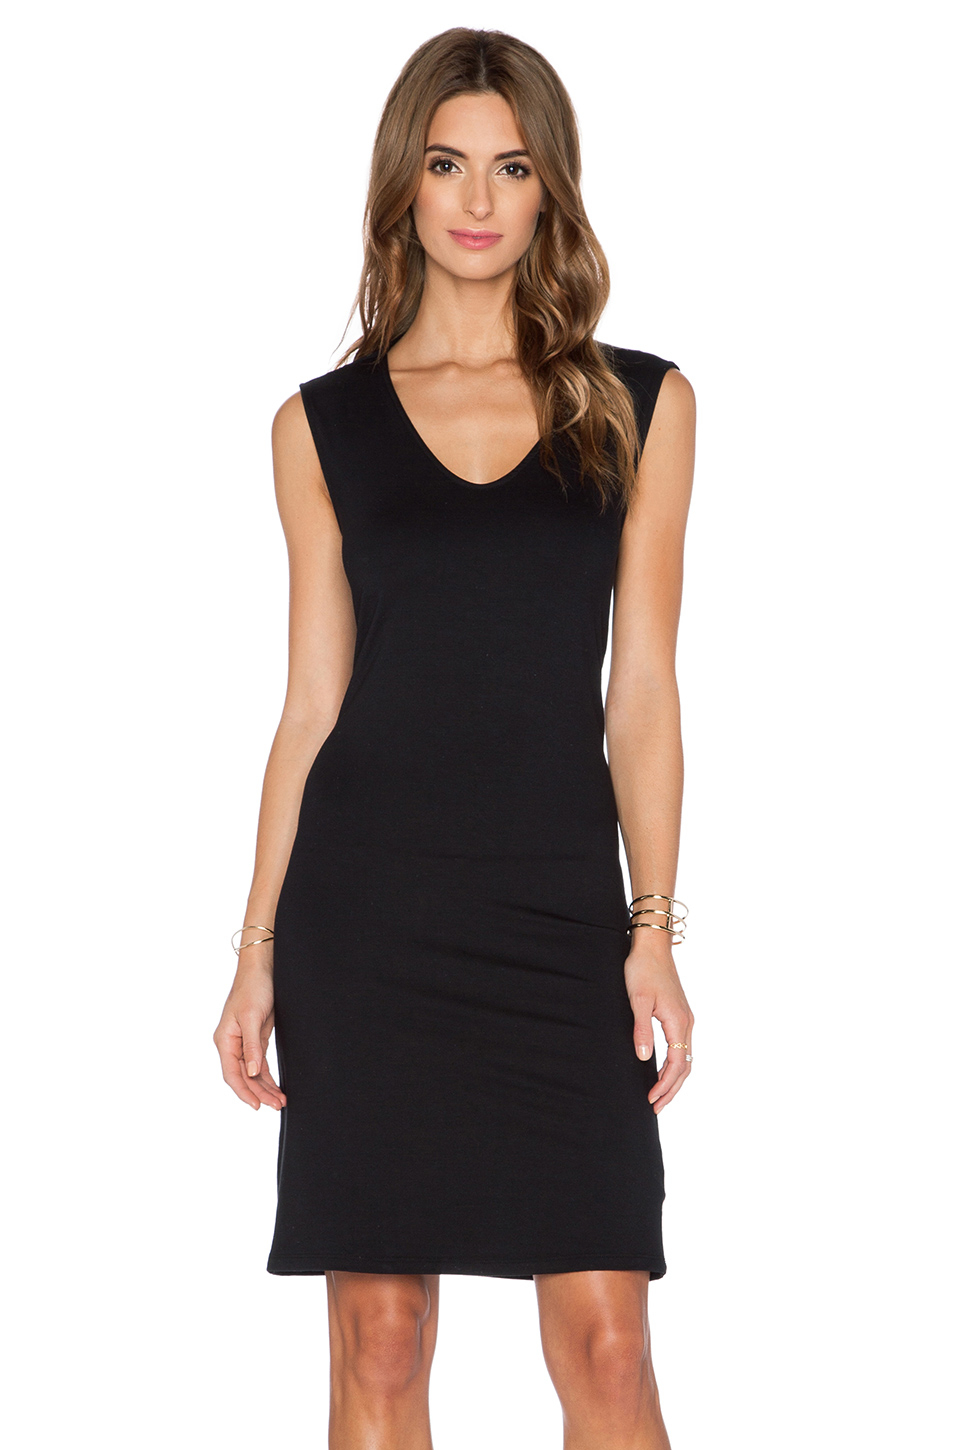 Lyst - Three Dots Draped-Back Jersey Dress in Black